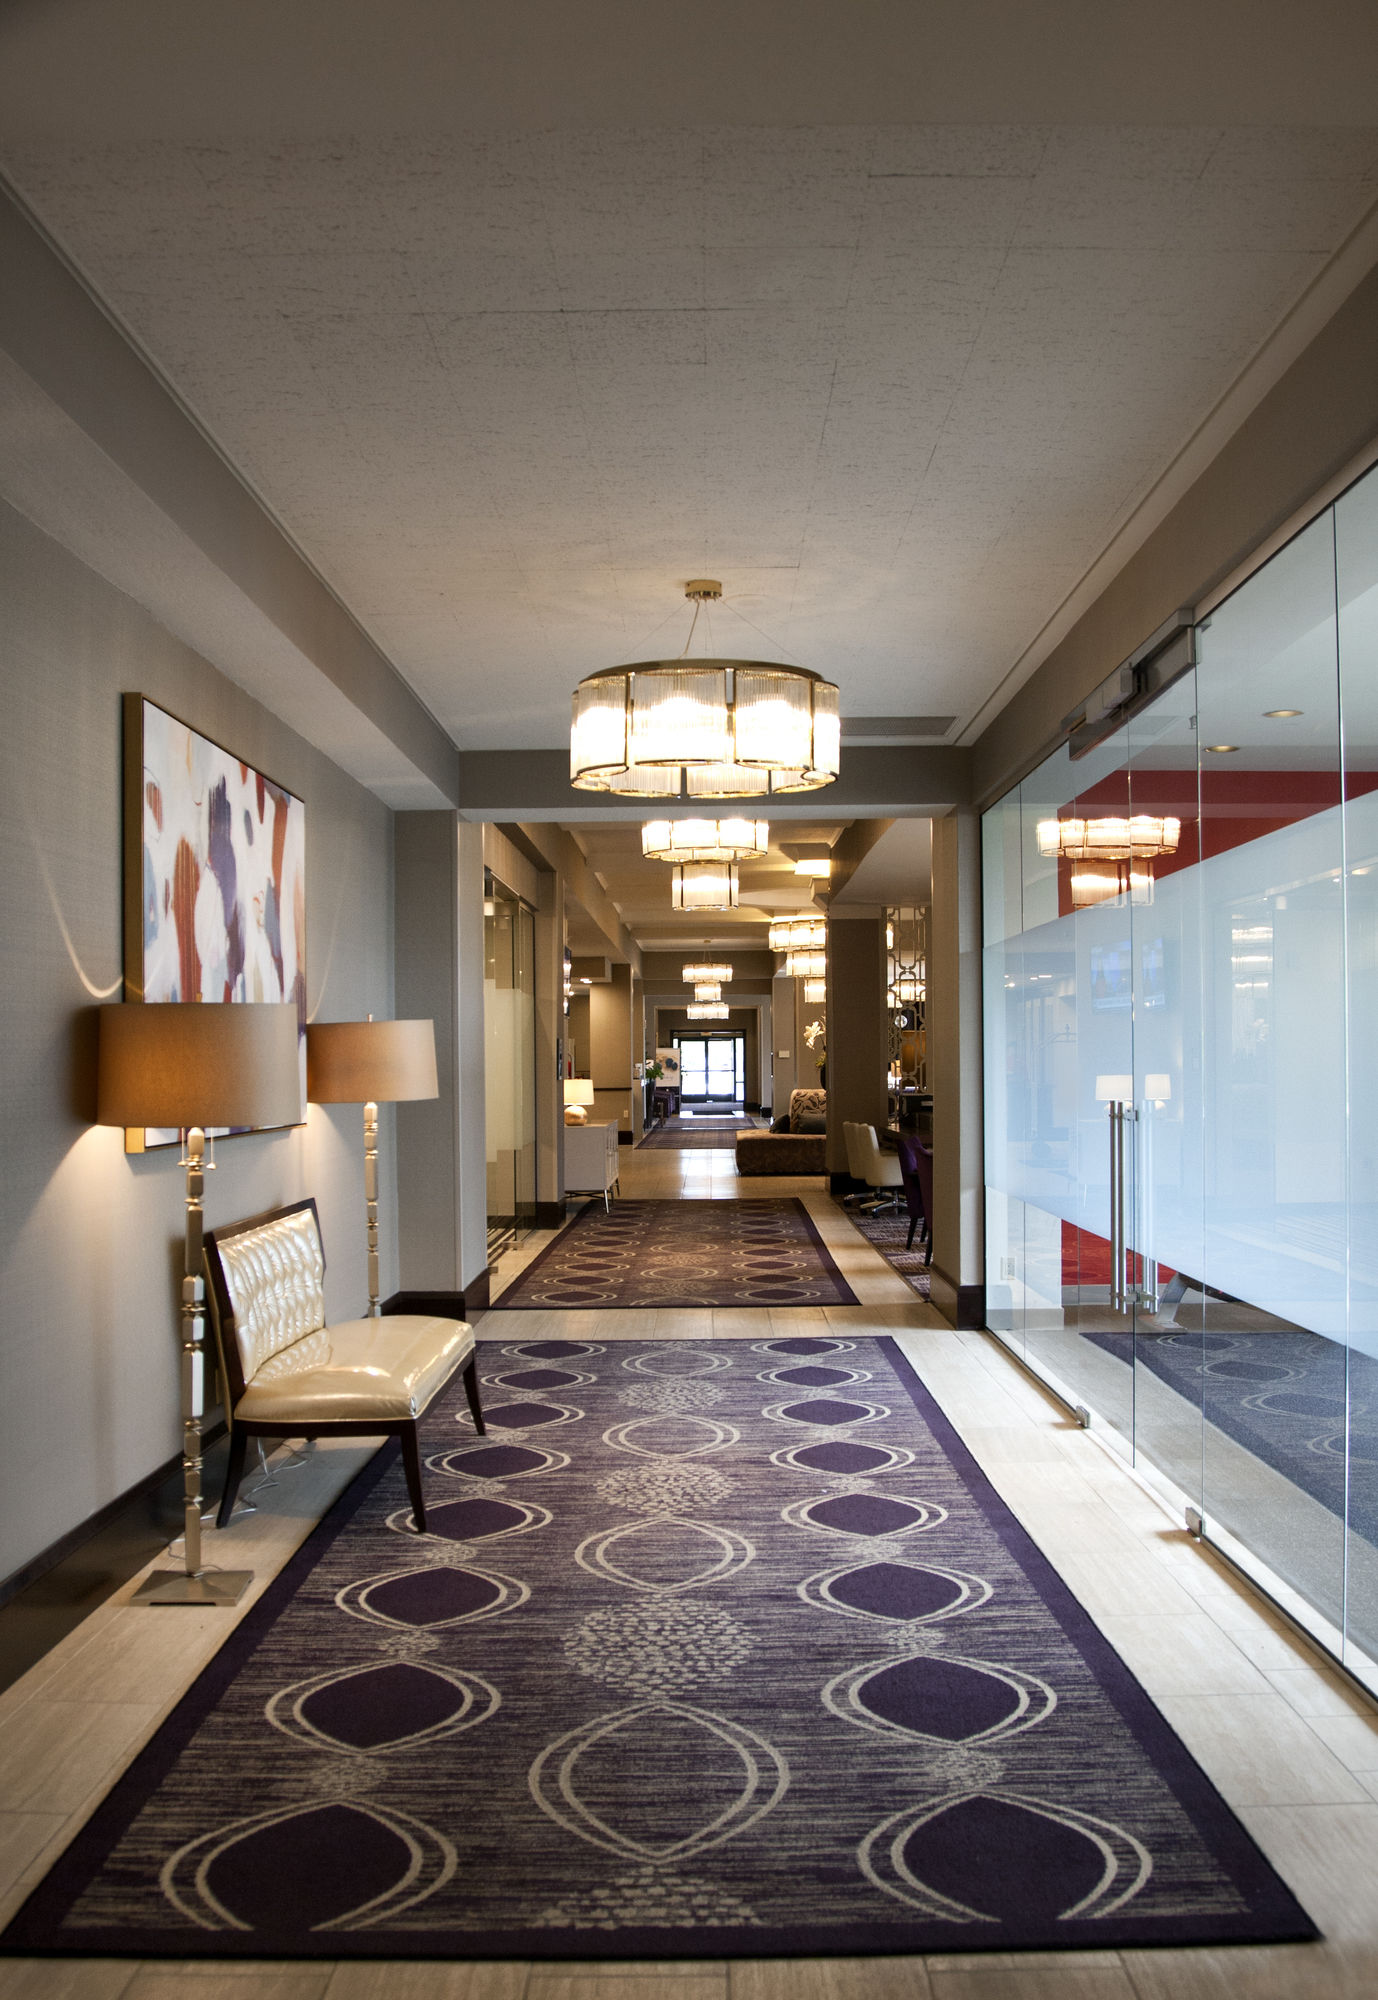 AdHotels up to 50% off on migom-zaim.ga Save on Hotels in Minneapolis, migom-zaim.ga: Boutique Hotels, Economy Hotels, Luxury Hotels, Airport Hotels.